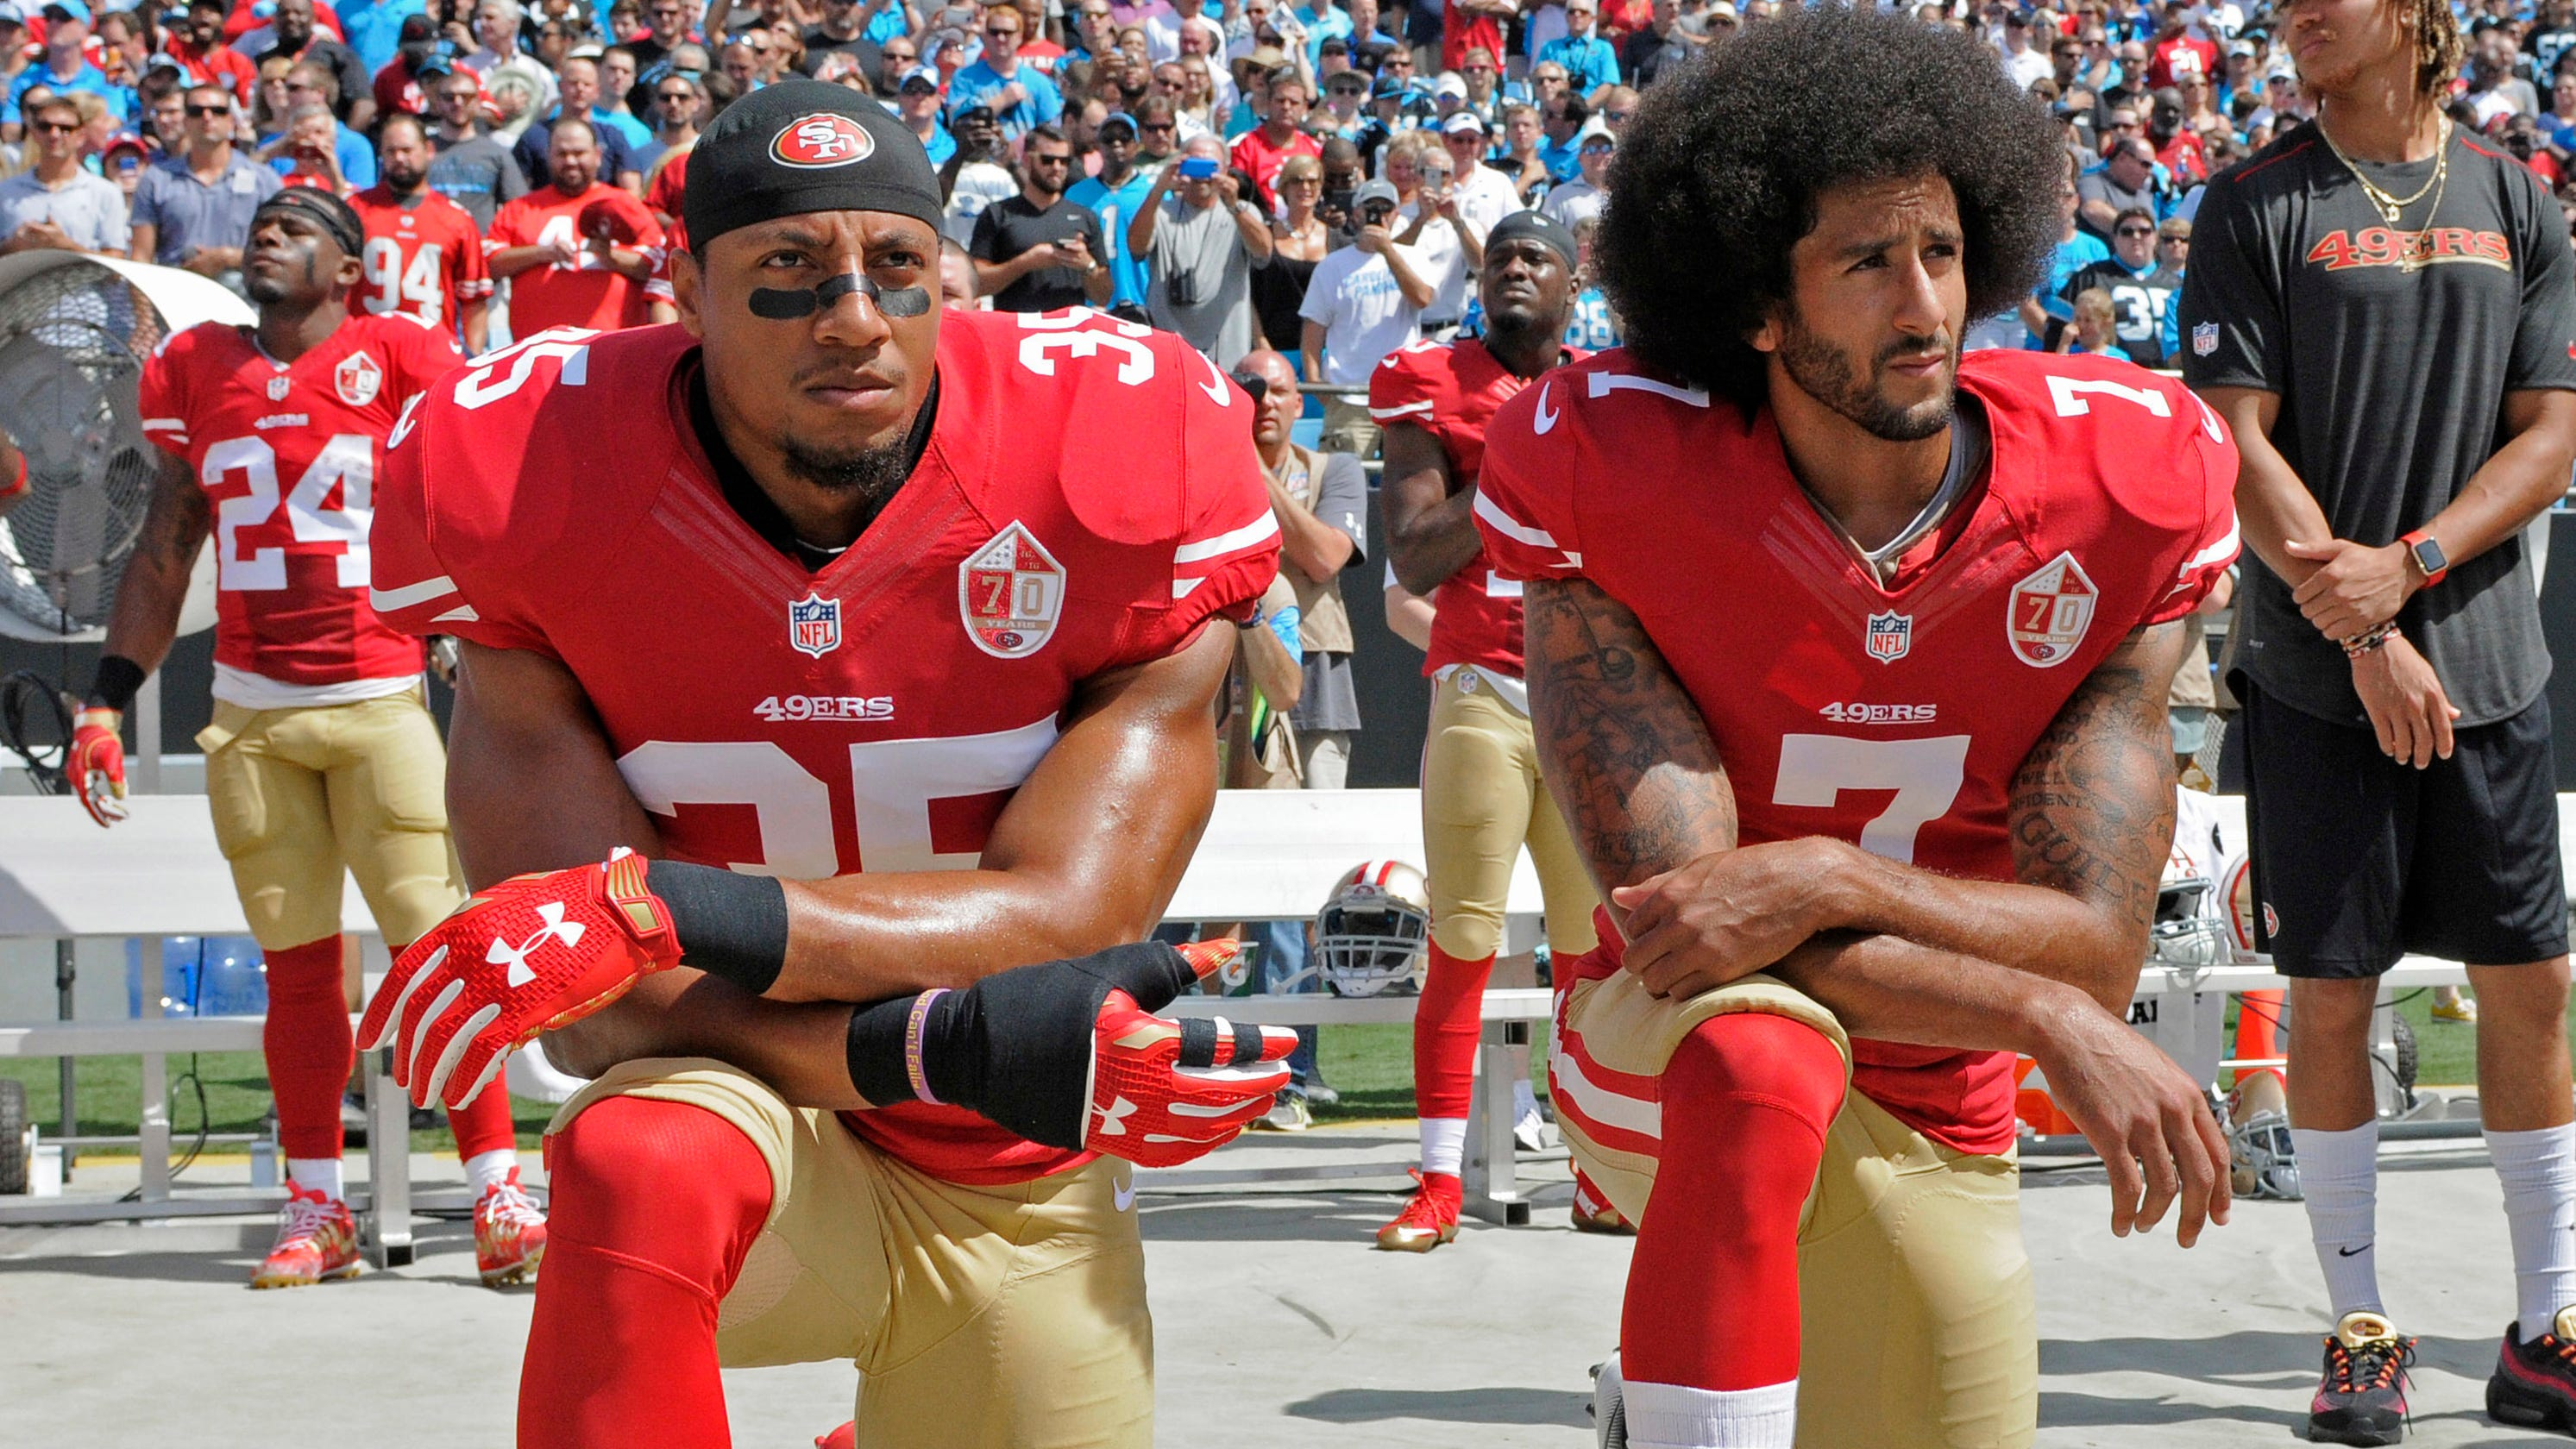 Eric Reid rips NFL for using Colin Kaepernick image: 'Diabolical'